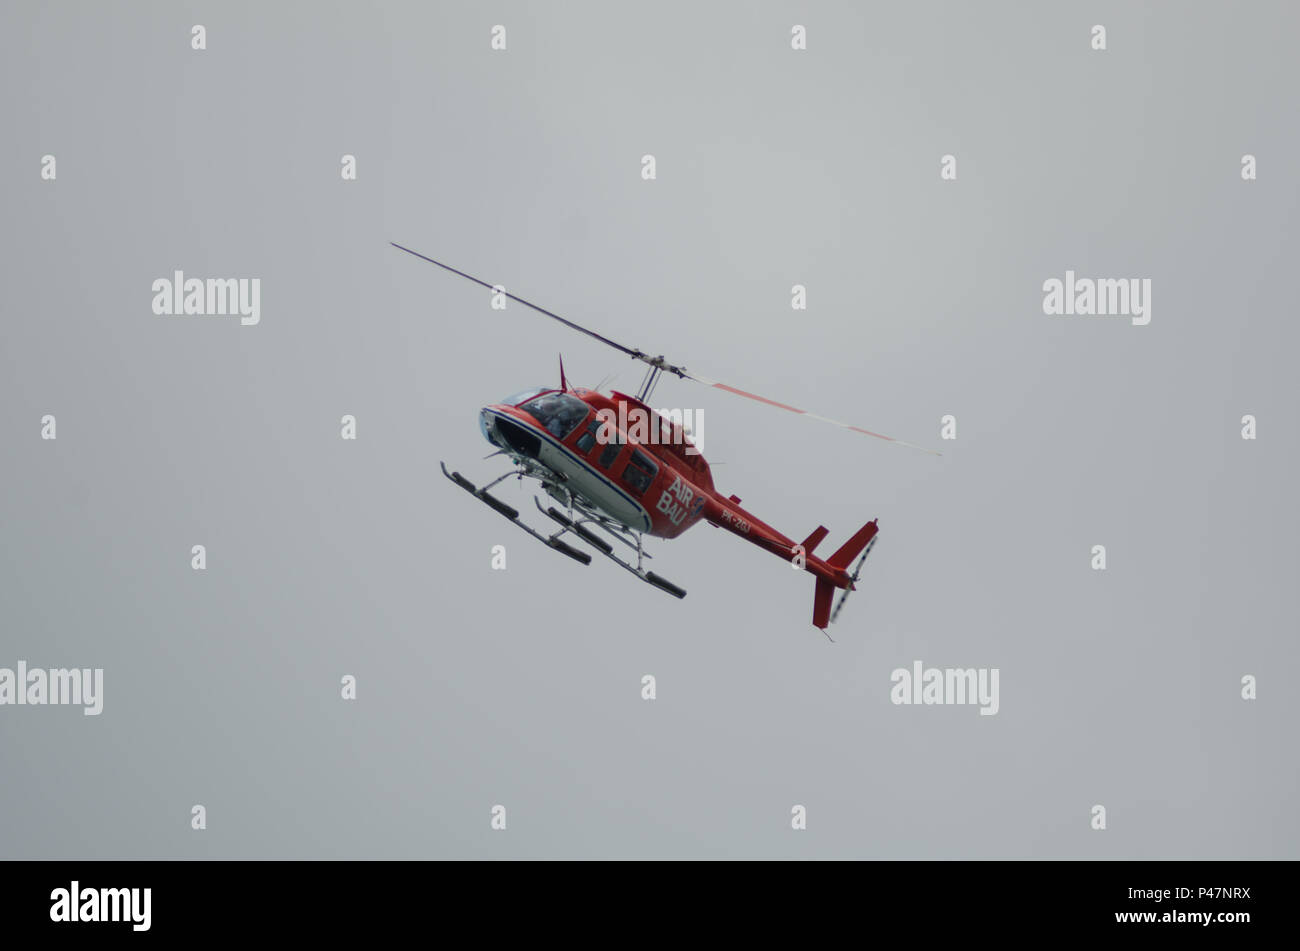 Bali Air Helicopter Sky Tours Bali Indonesia Stock Photo